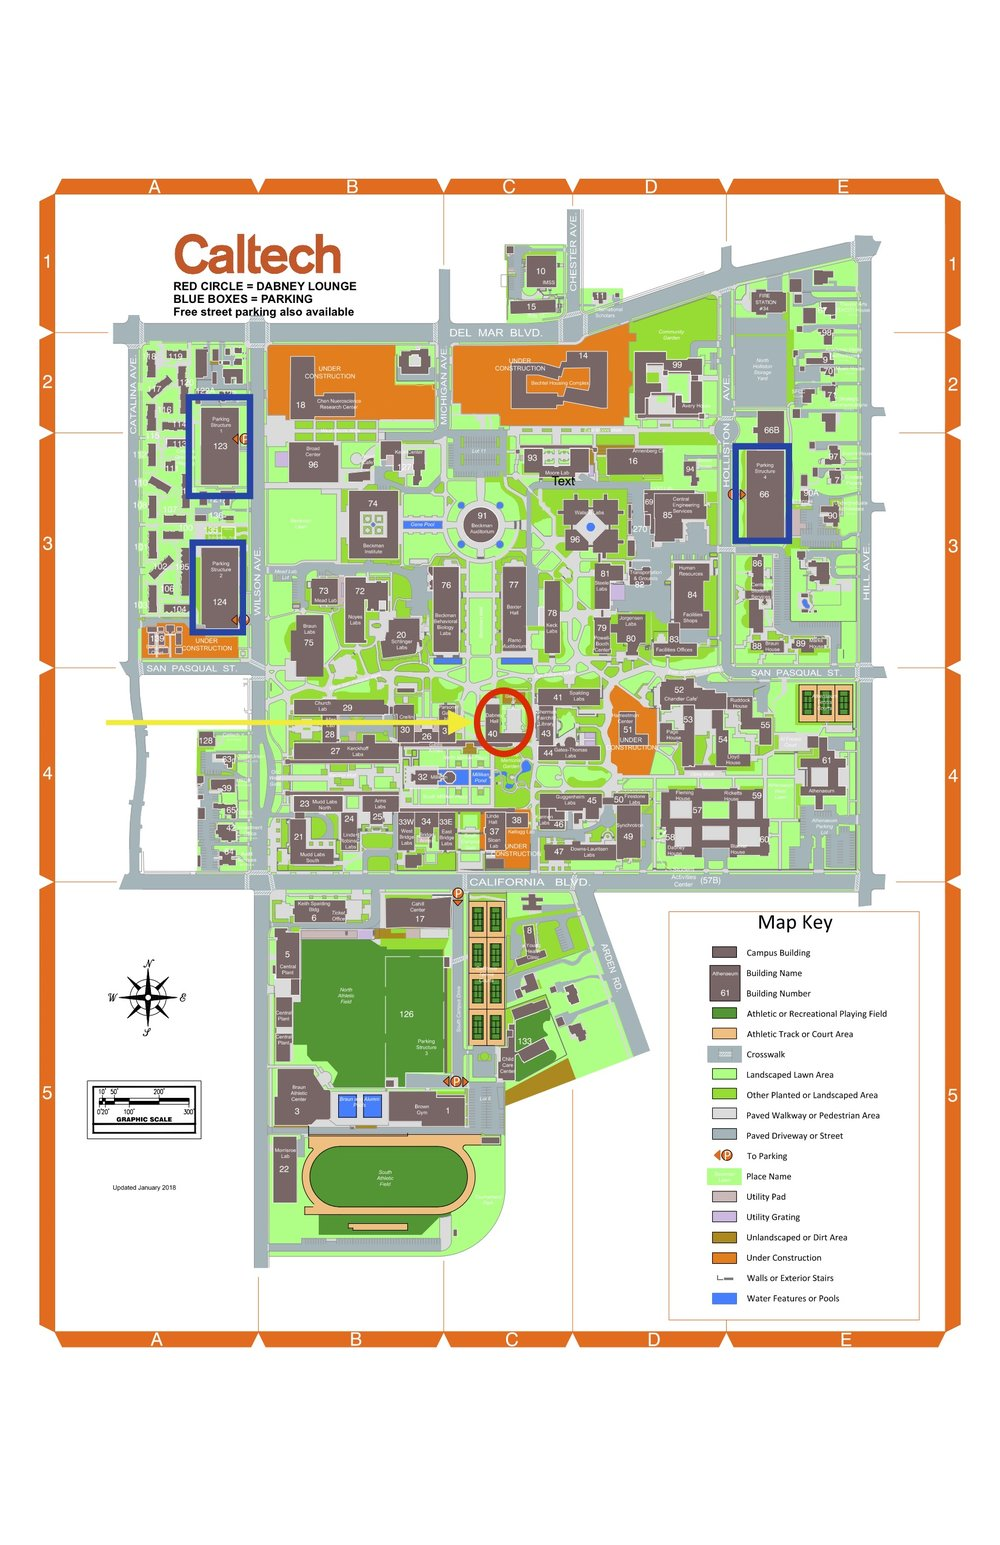 Caltech_parking_map.jpg